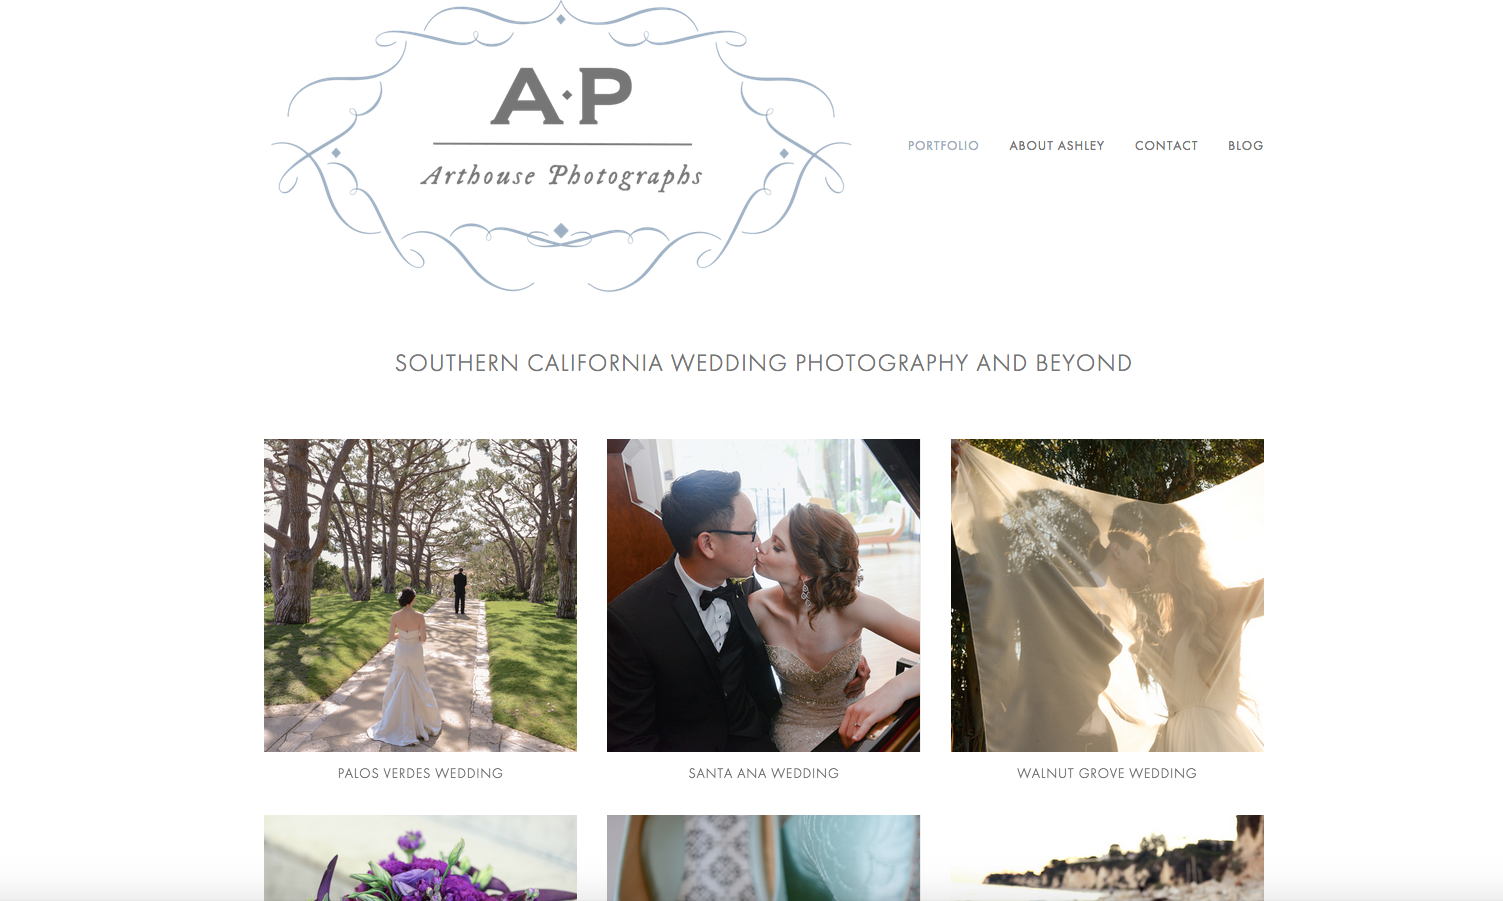 Los Angeles Wedding Photography by Arthouse Photographs   Website Design by Heather Sharpe of The Editor's Touch